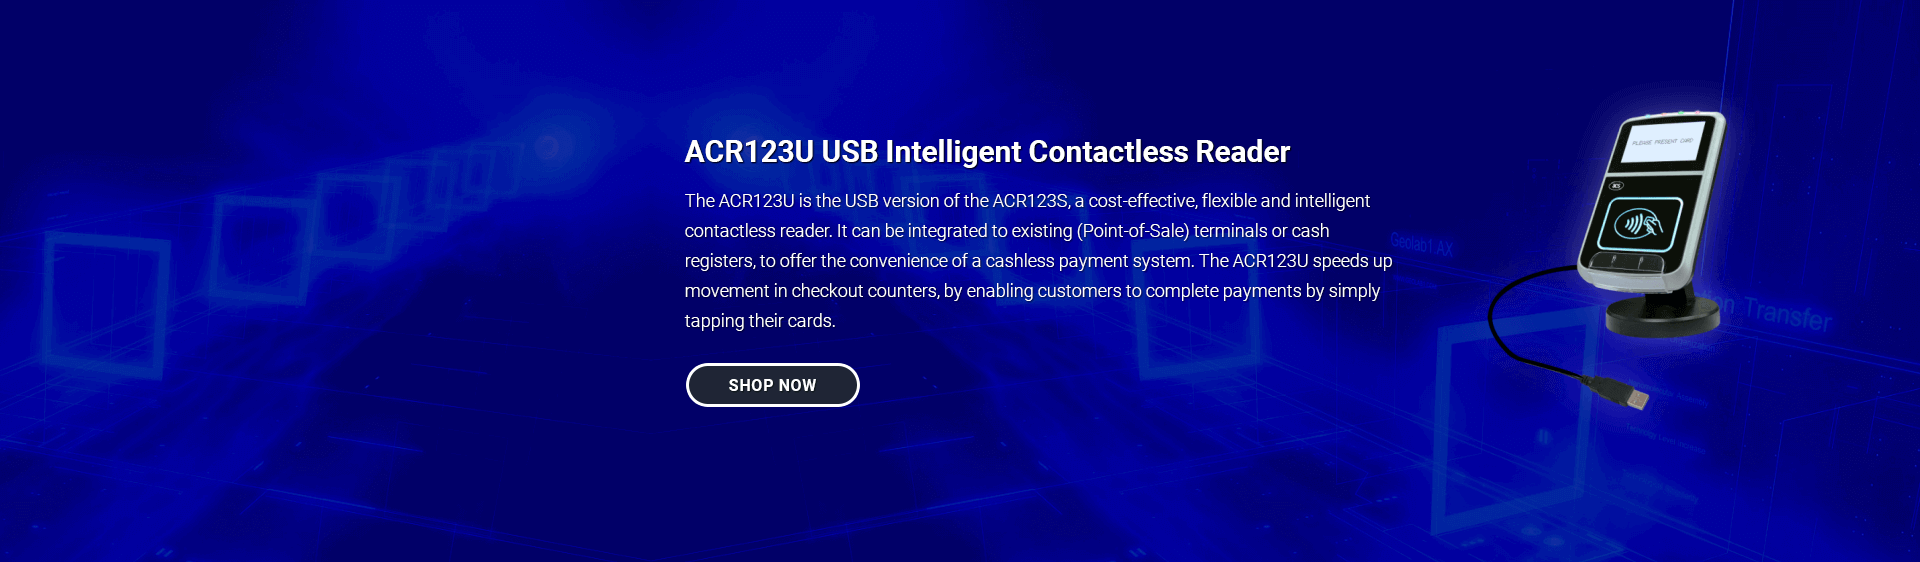 ACR123U USB Intelligent ...